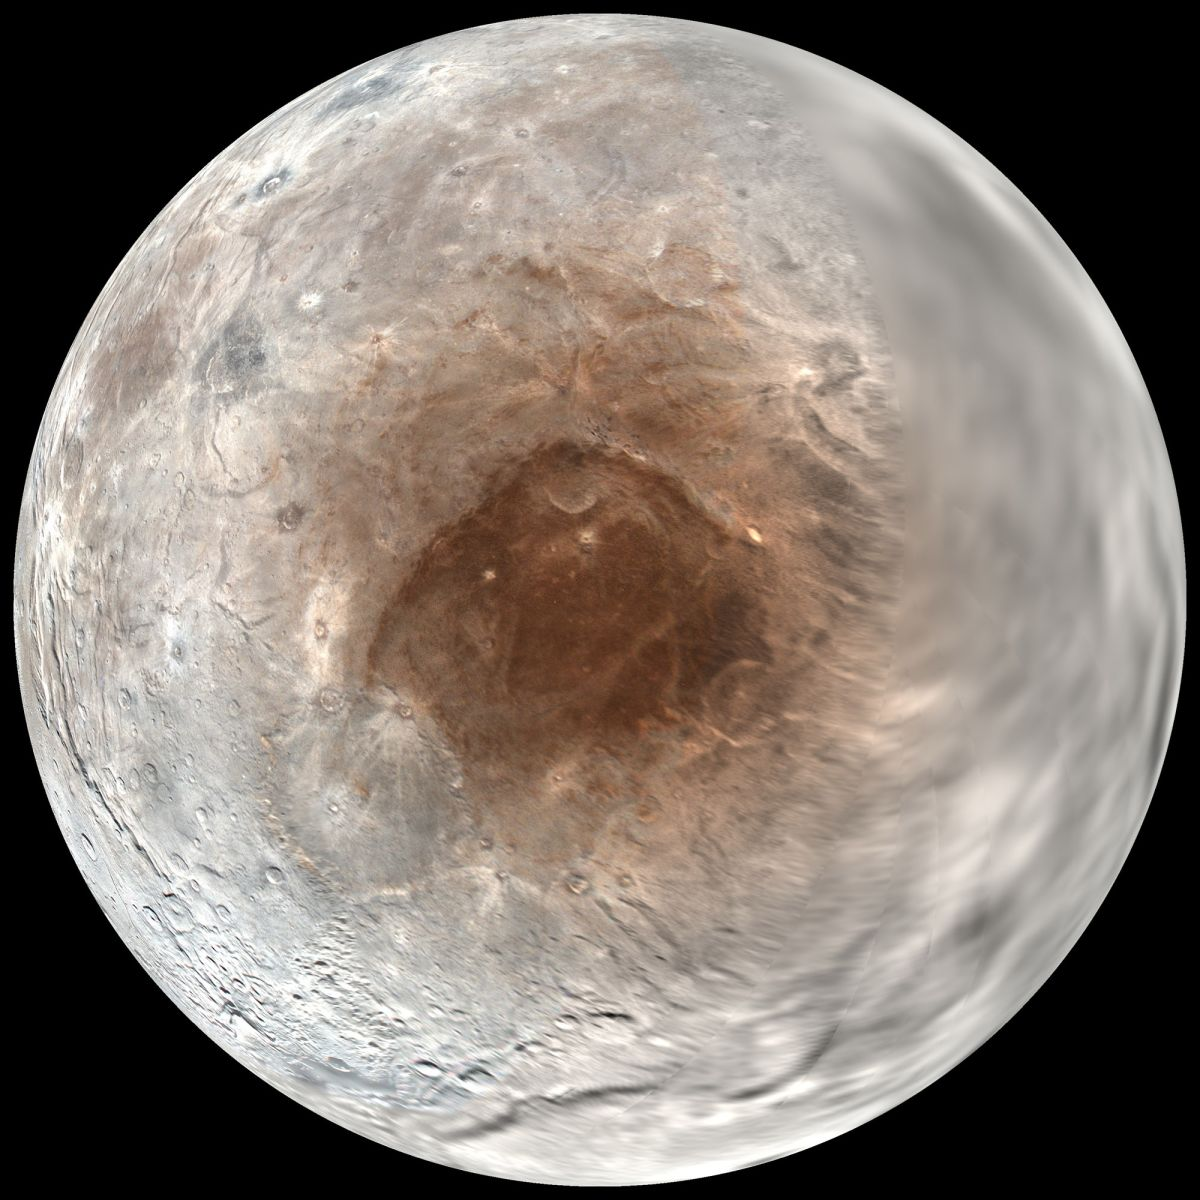 Kerberos Moon Of Plluto: Weird Red Spot On Pluto's Moon Charon Caused By Traveling